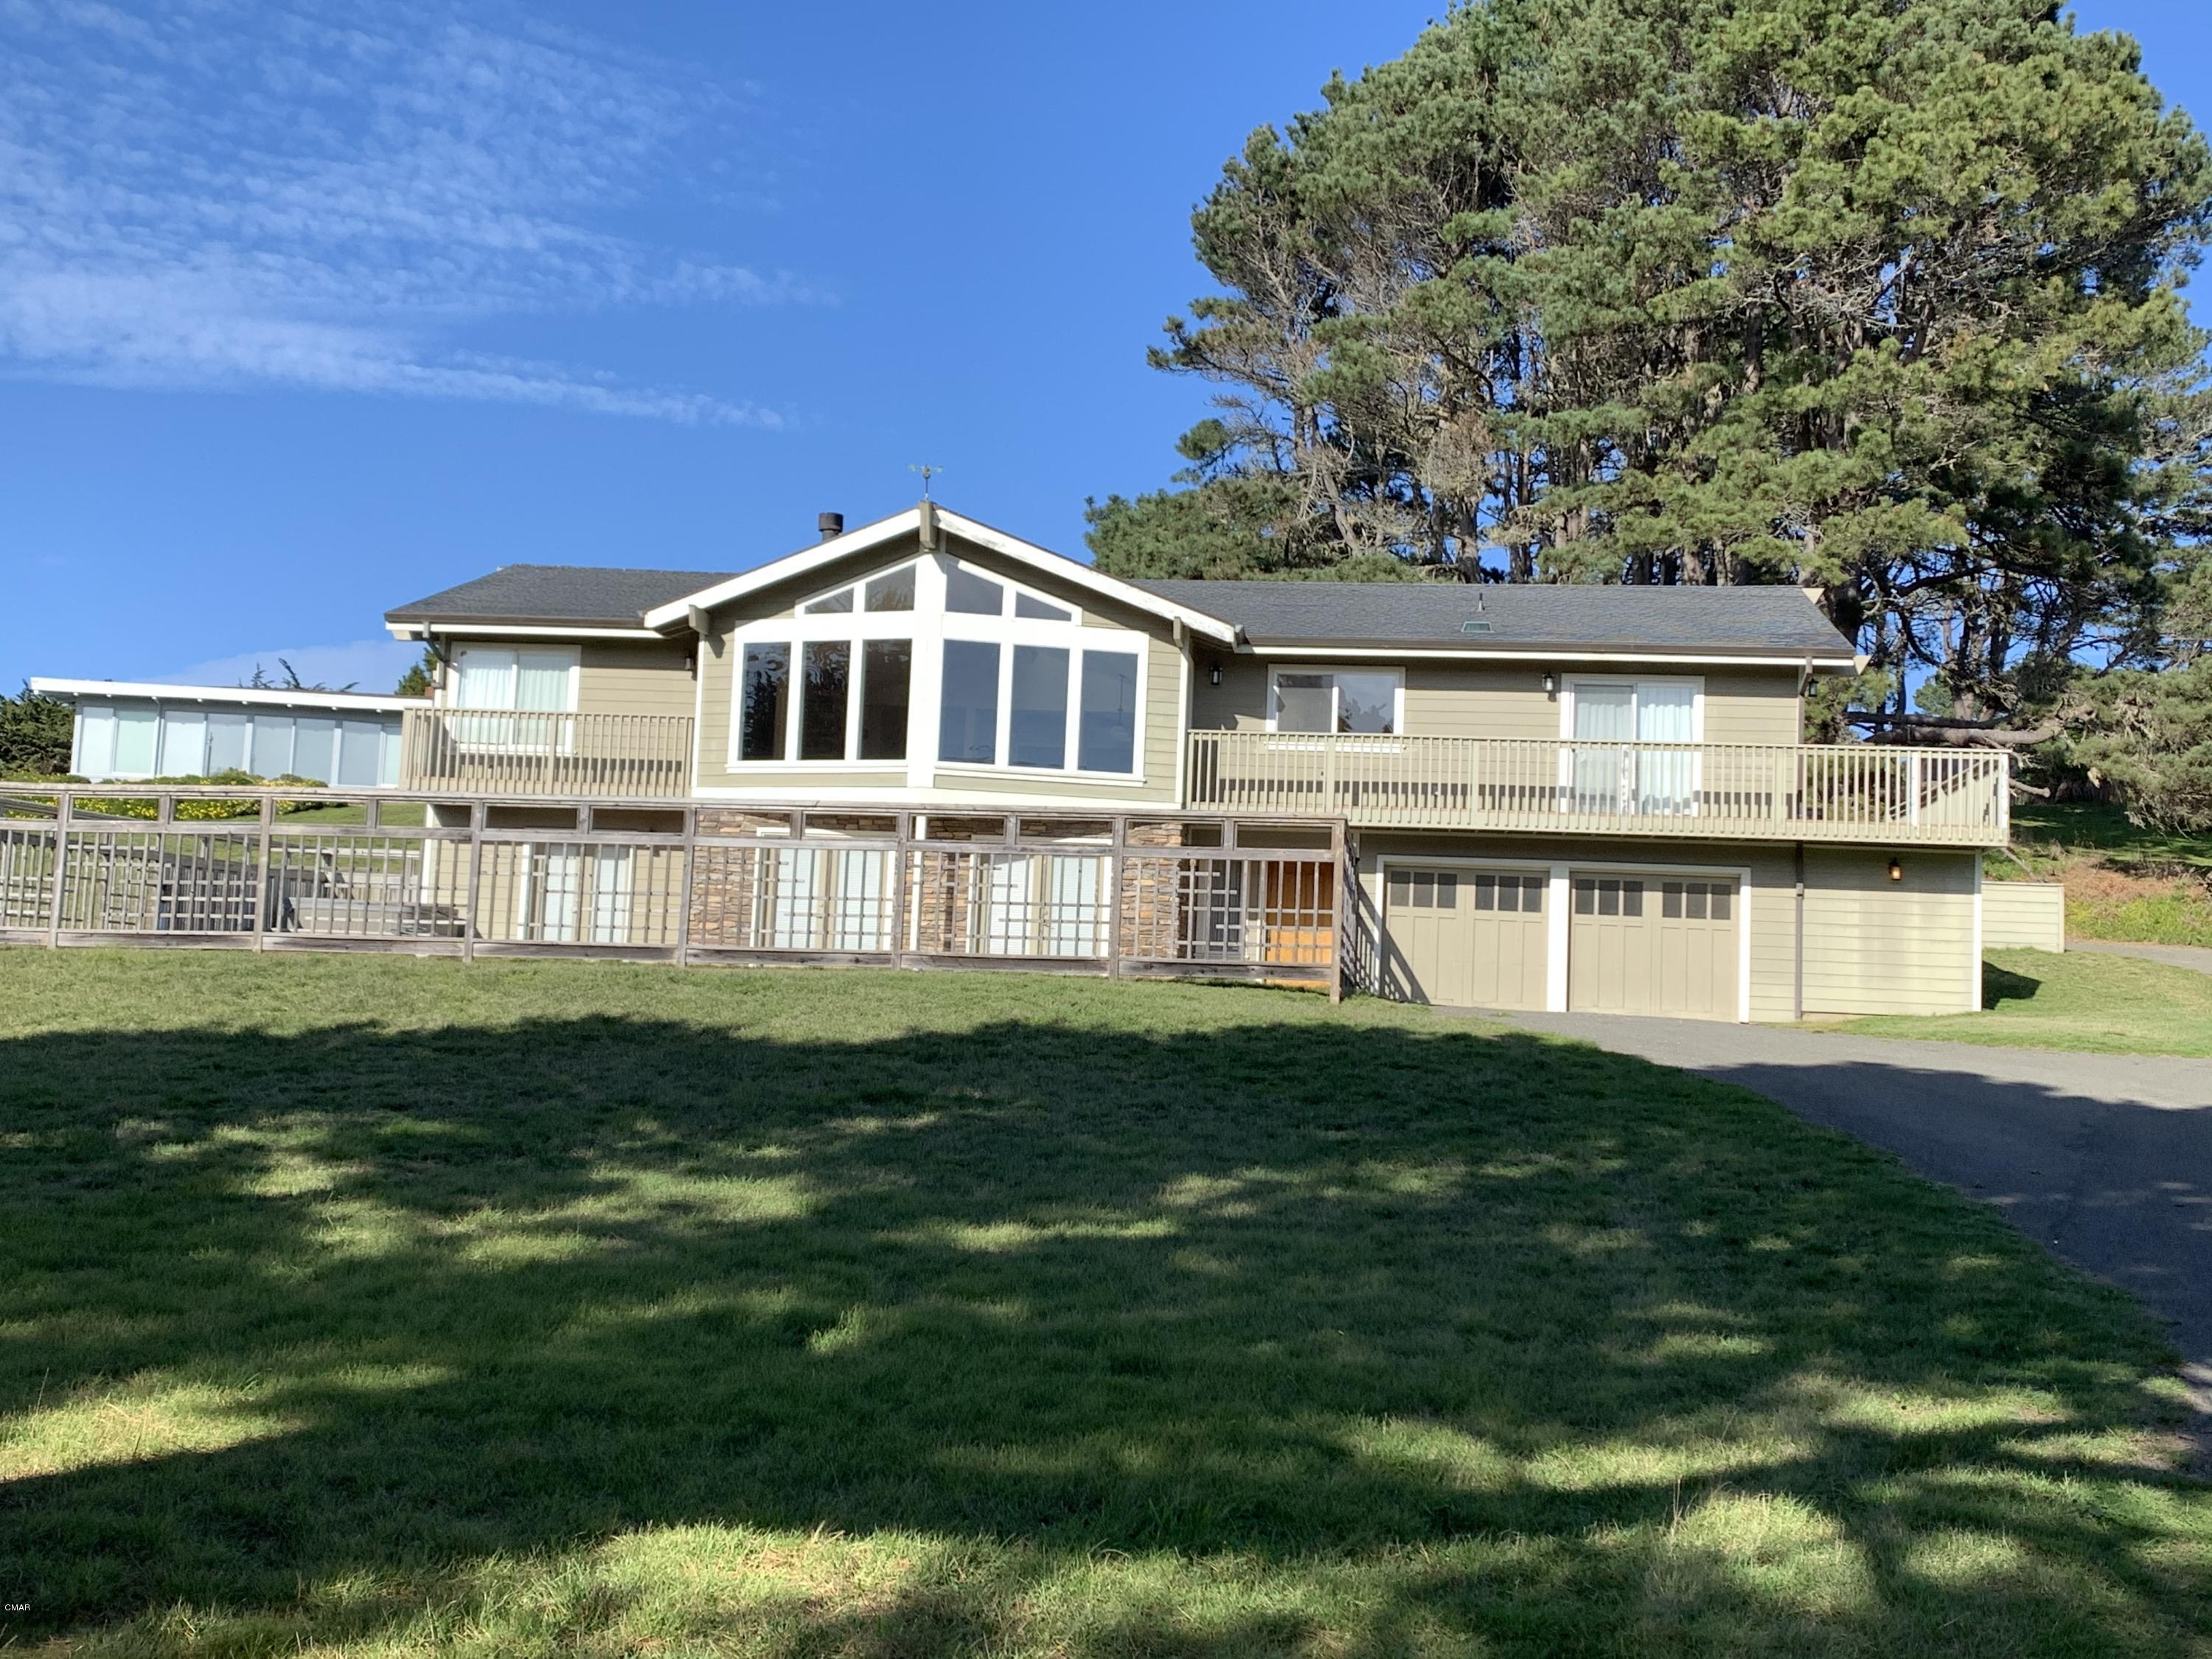 Ocean Views from almost every room, lovely home in highly desirable area. Open concept Great Room with views, kitchen features a 6 burner Viking Range, stainless steel appliances, granite counters, two sinks and a dedicated pantry. Main living area has easy access with it's own separate entrance. Great Room with stone wood burning fireplace and media room, Master Suite has a walk in closet, large master bath with gas burning fireplace, jetted soaking tub, easy access shower and dual sinks. HUGE downstairs family room with separate entrance, two French Doors to the patio and hot tub.  Downstairs has another bedroom with walk in closet and bathroom and another French Door to the patio. This home was a successful vacation rental and has MANY possibilities. New Furnace, Neighborhood has deeded